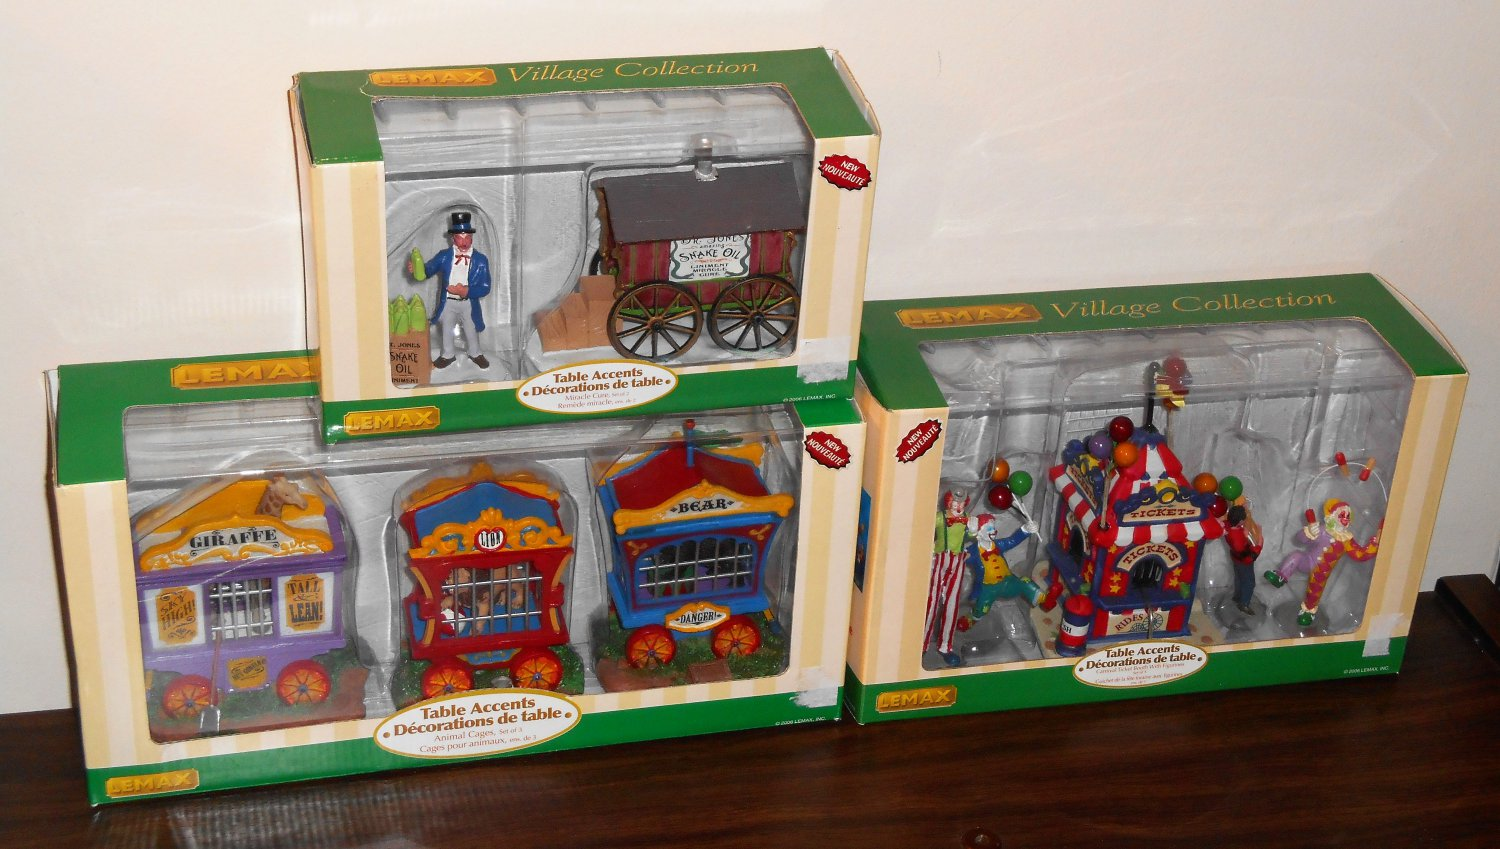 Lemax Circus Village Collection Lot 63581 63582 63563 Table Accent Polyresin Figurines 2006 NIB